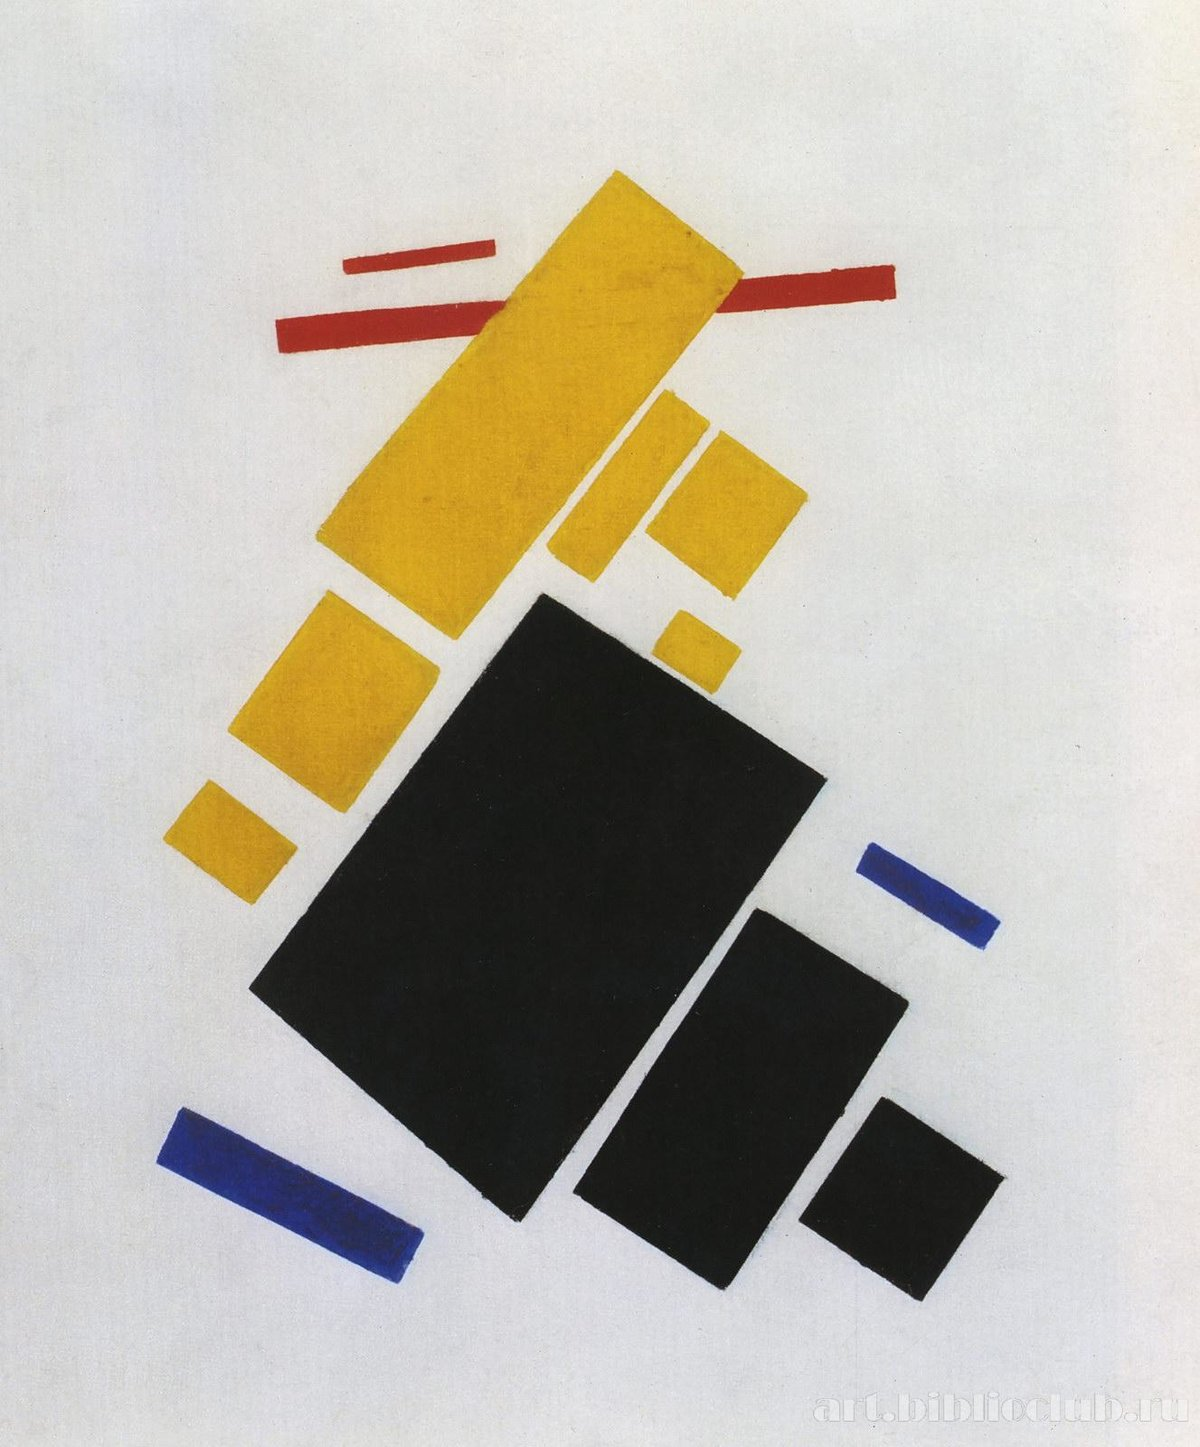 malevich last years essays Free russian history essays and  about 1915 it was the year that malevich revealed his suprematist compositions that  the revolution in russia in the last years of.